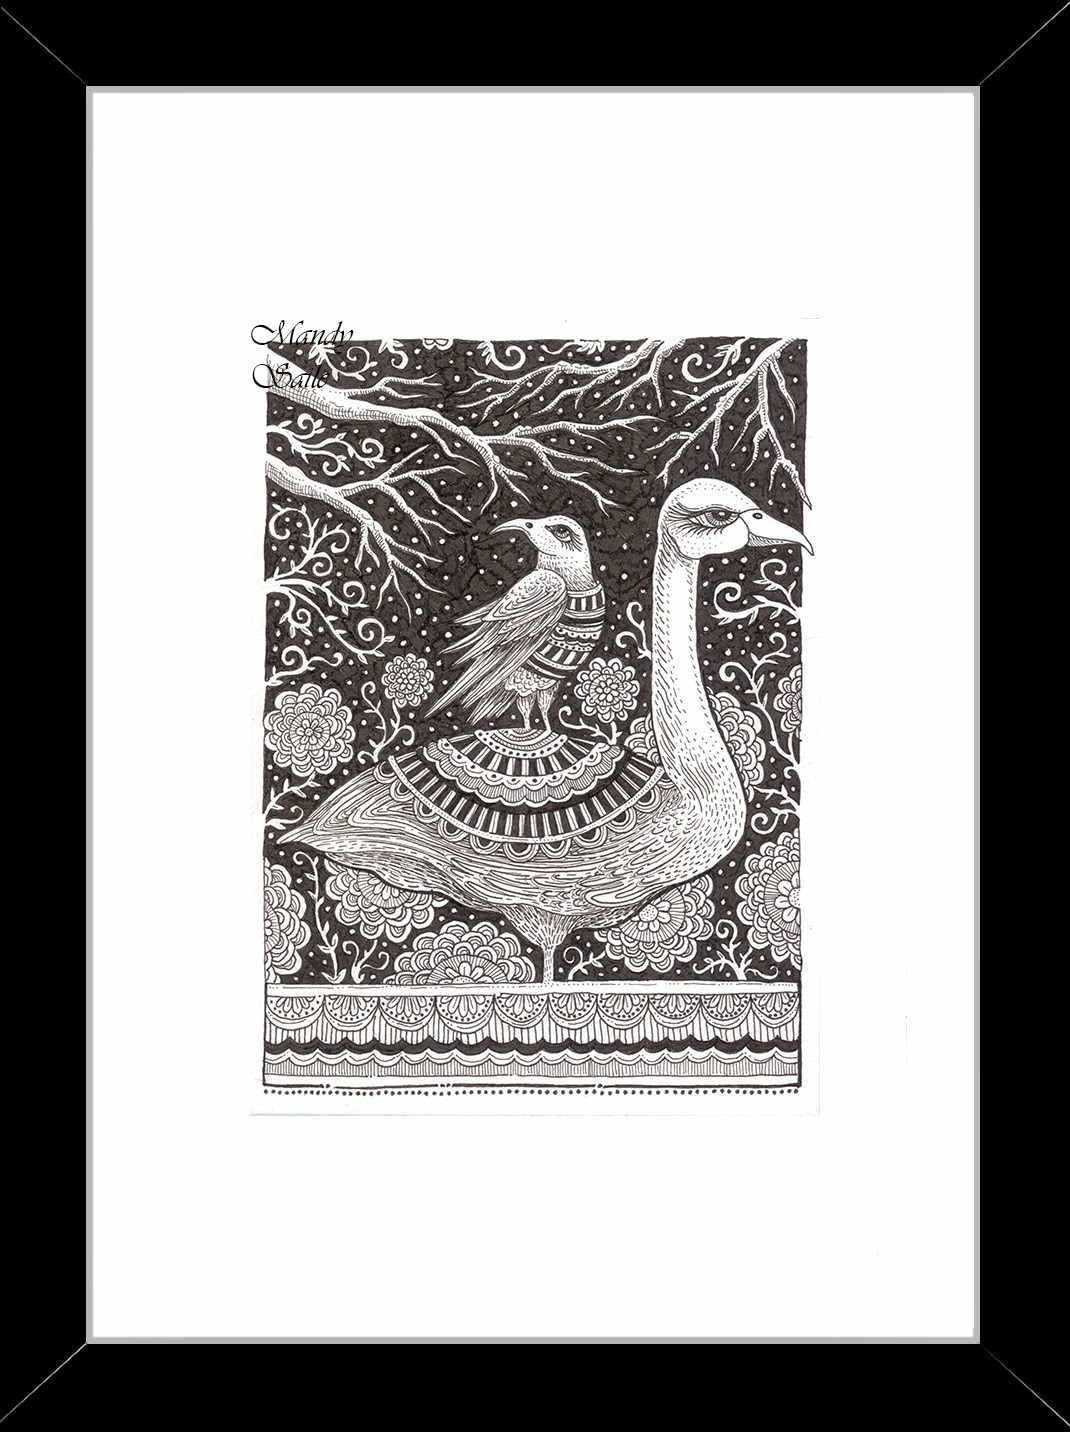 https://www.etsy.com/listing/209889895/ink-drawing-16-the-swan-the-raven-ink?ref=shop_home_active_6